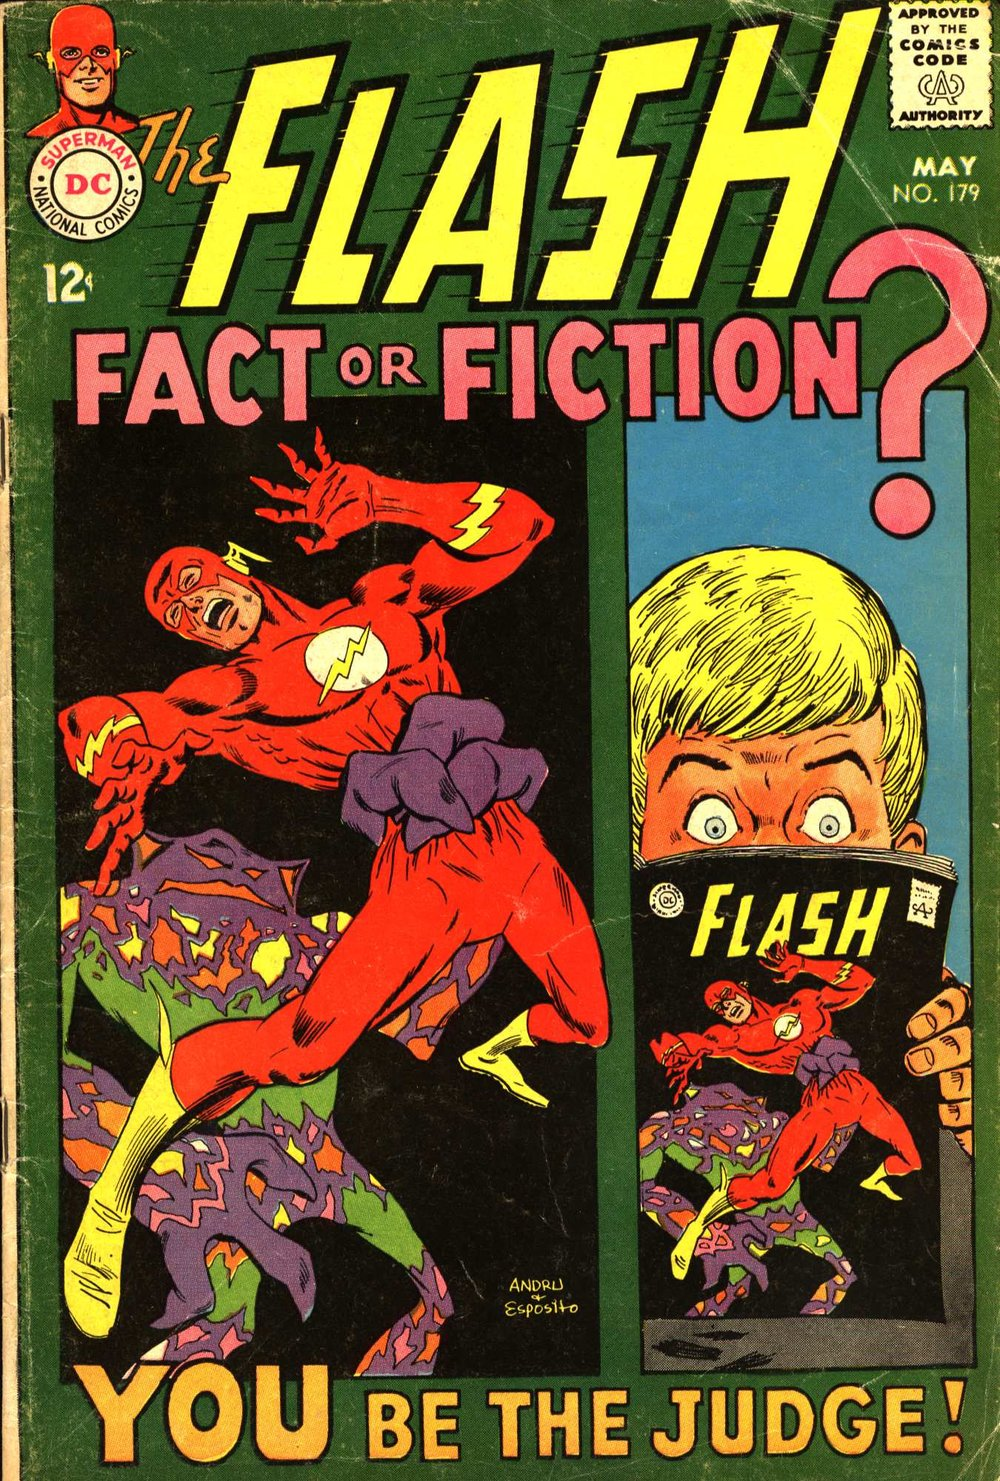 The Flash (1959) #179, written by Cary Bates. Cover by Ross Andru & Mike Esposito.